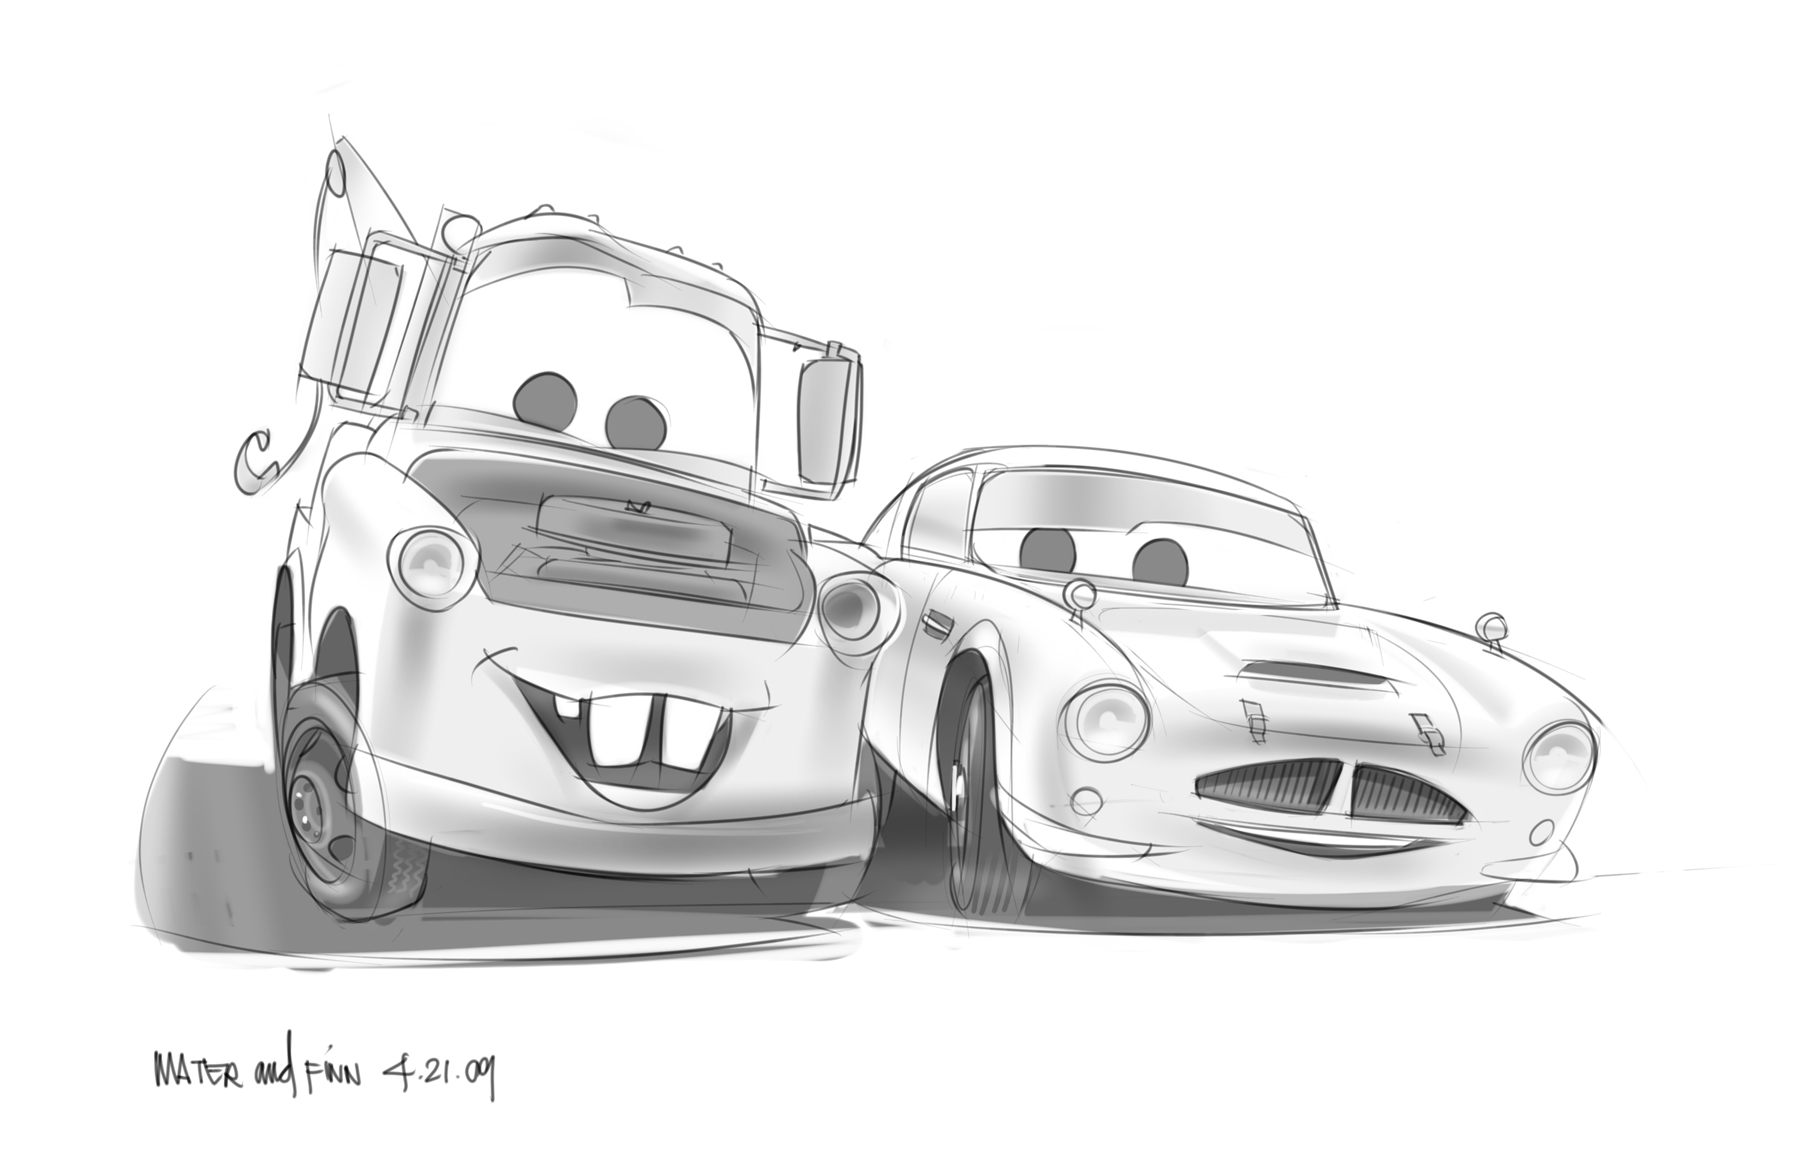 cars 2 drawing pictures pixar cars 2 sketches 2 serious by lizkay on deviantart pictures drawing cars 2